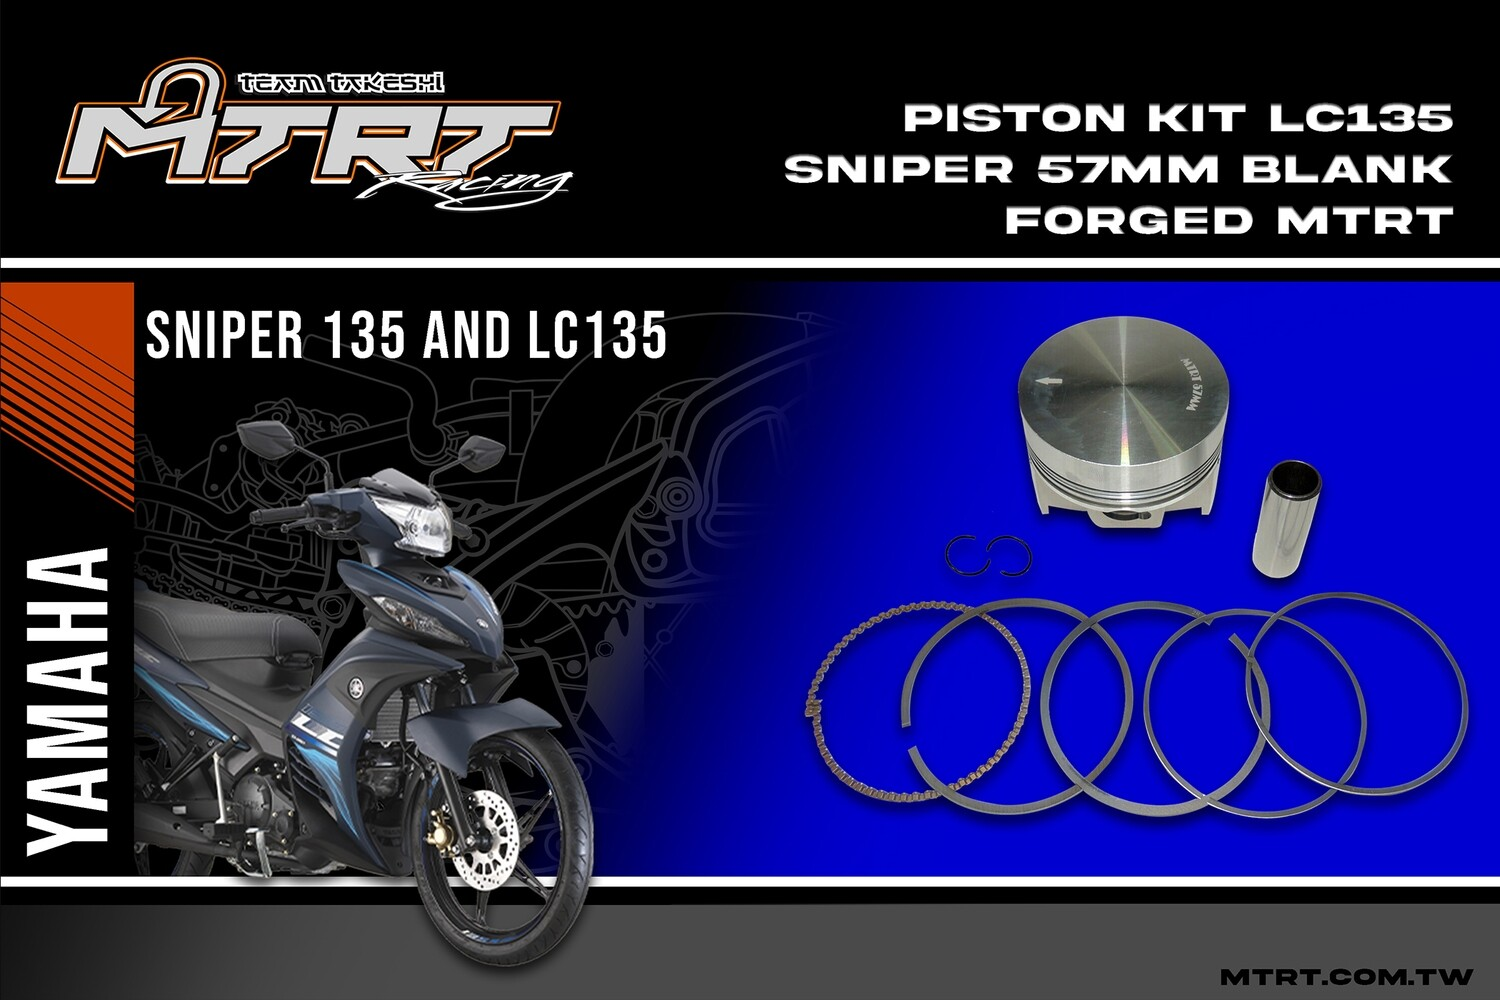 57MM BLANK FORGED PISTON KIT LC135 MTRT